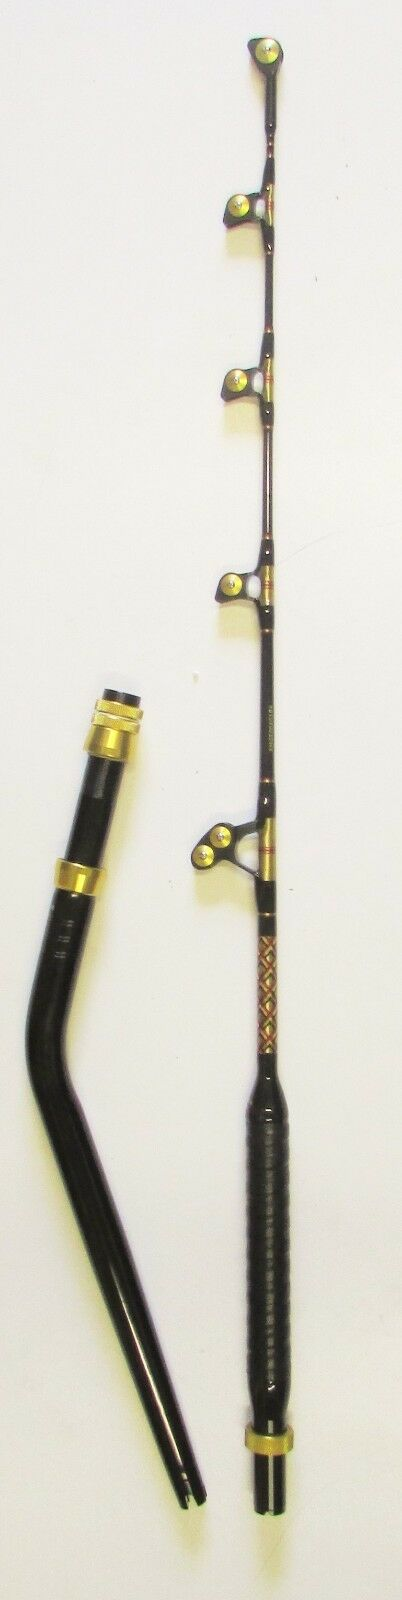 XCALIBER MARINE GOLIATH SERIES TROLLING ROD ROLLER GUIDES  50-80 LB RED AND gold  outlet online store